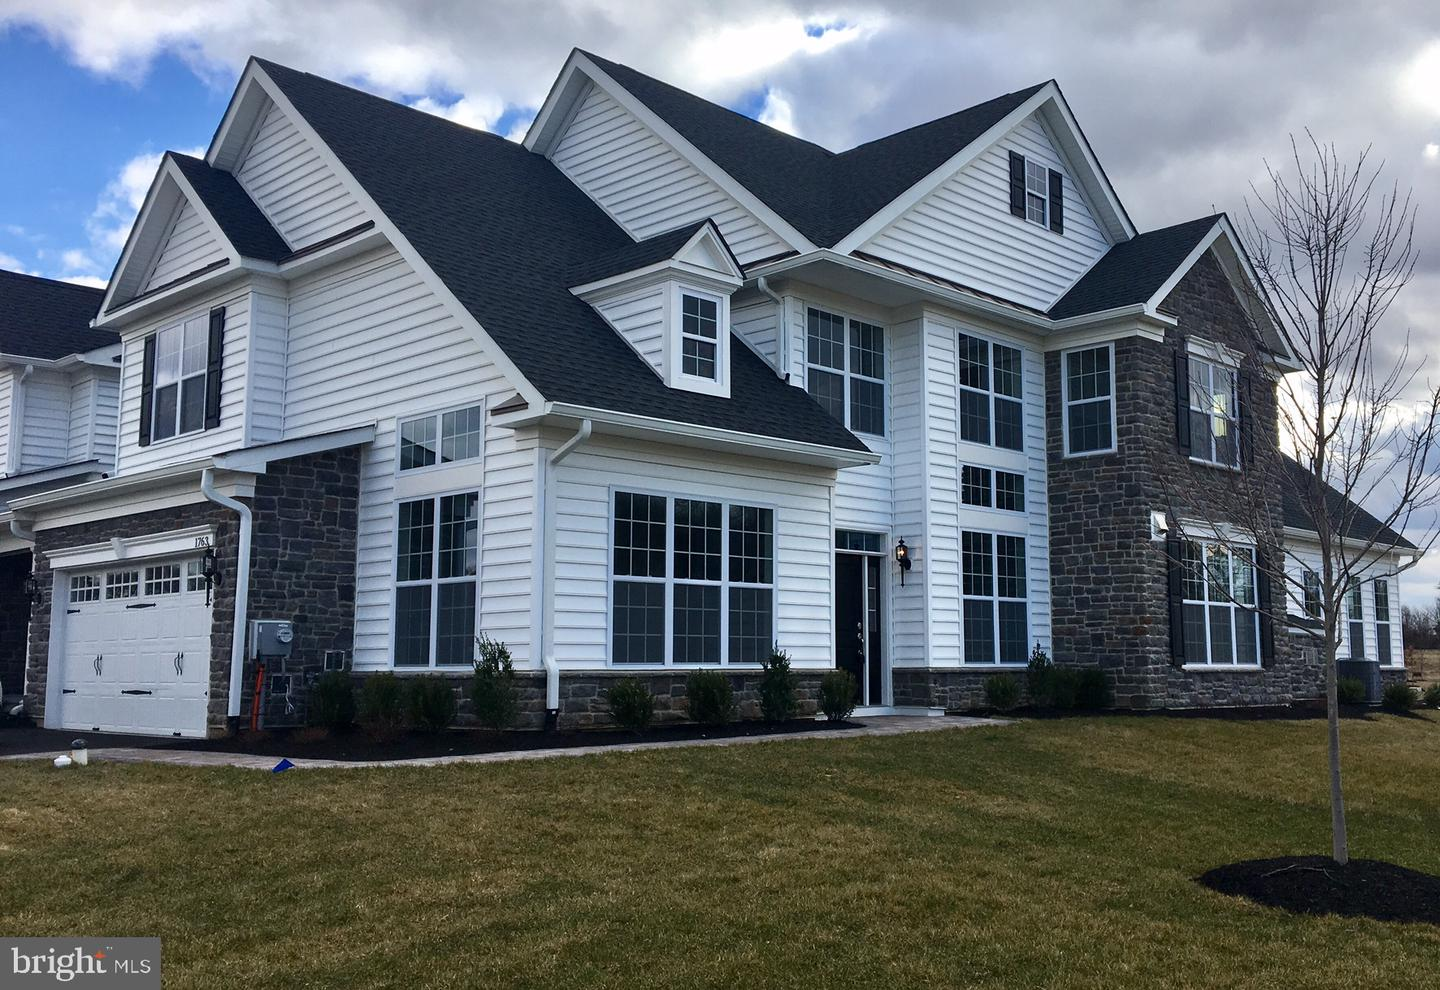 111 IRIS WAY, YARDLEY, Pennsylvania